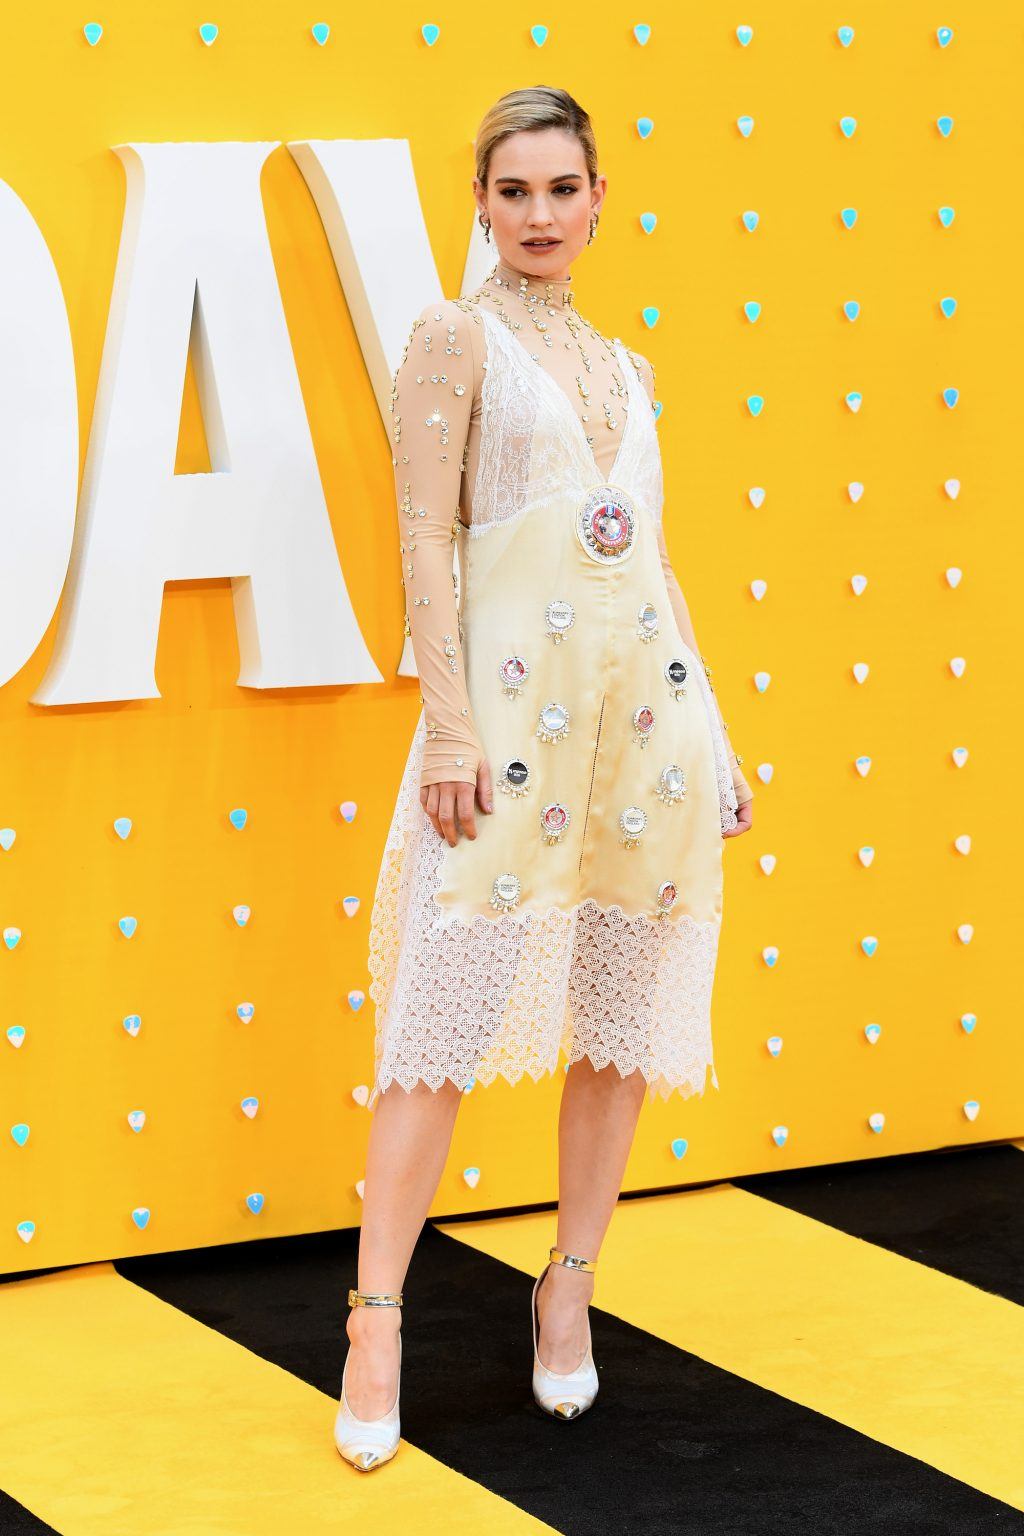 The Best-Dressed Celebrities of the Week of June 24, 2019 – Vote Now